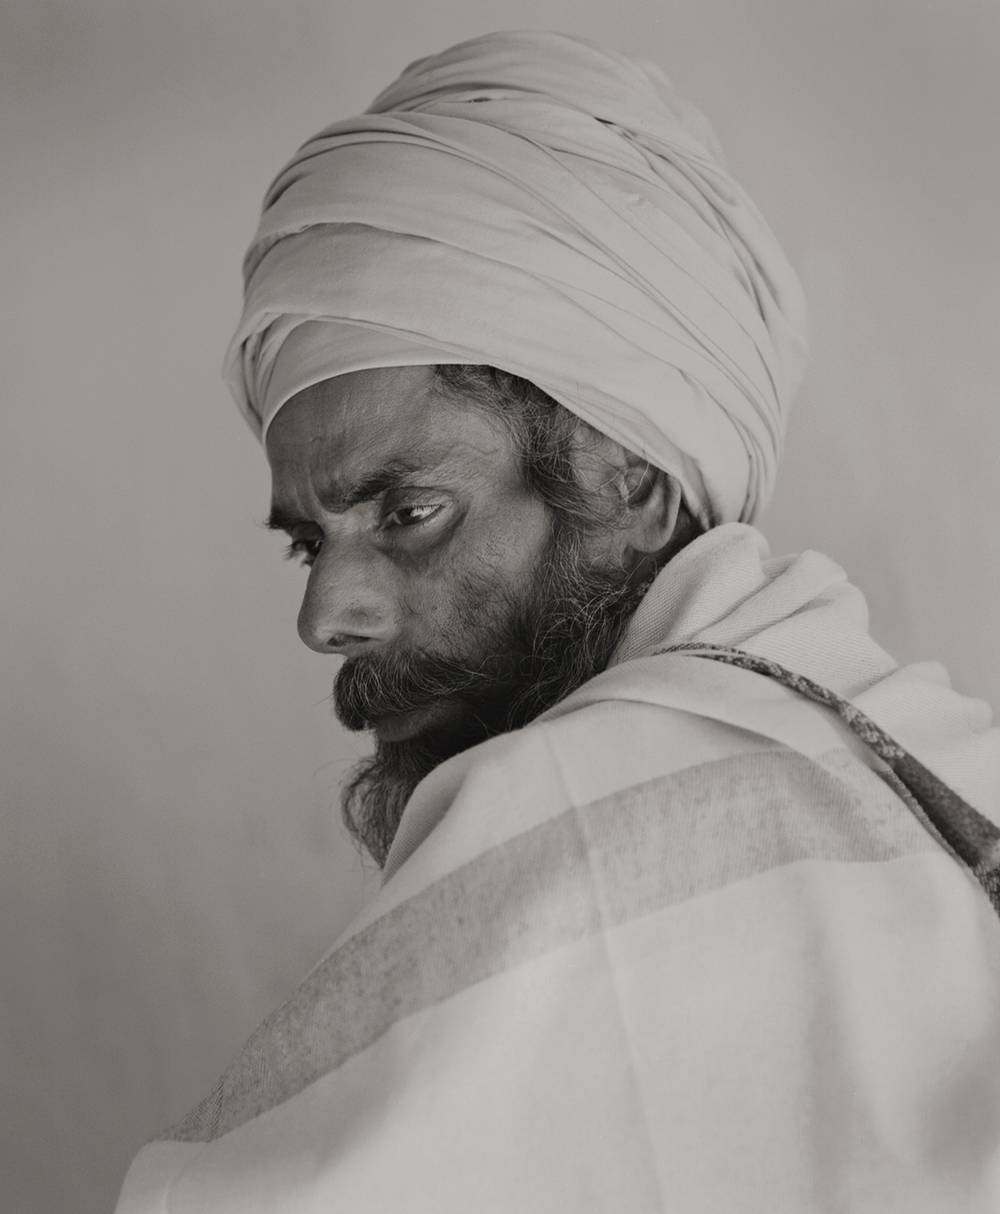 'eternal light' #6 allahabad. india 2013. a sadhu (saint who left the ordinary life, serve only to their gods) who came to join the kumbh mela (hindu ritual festival held once in every 12 years) by kenro izu